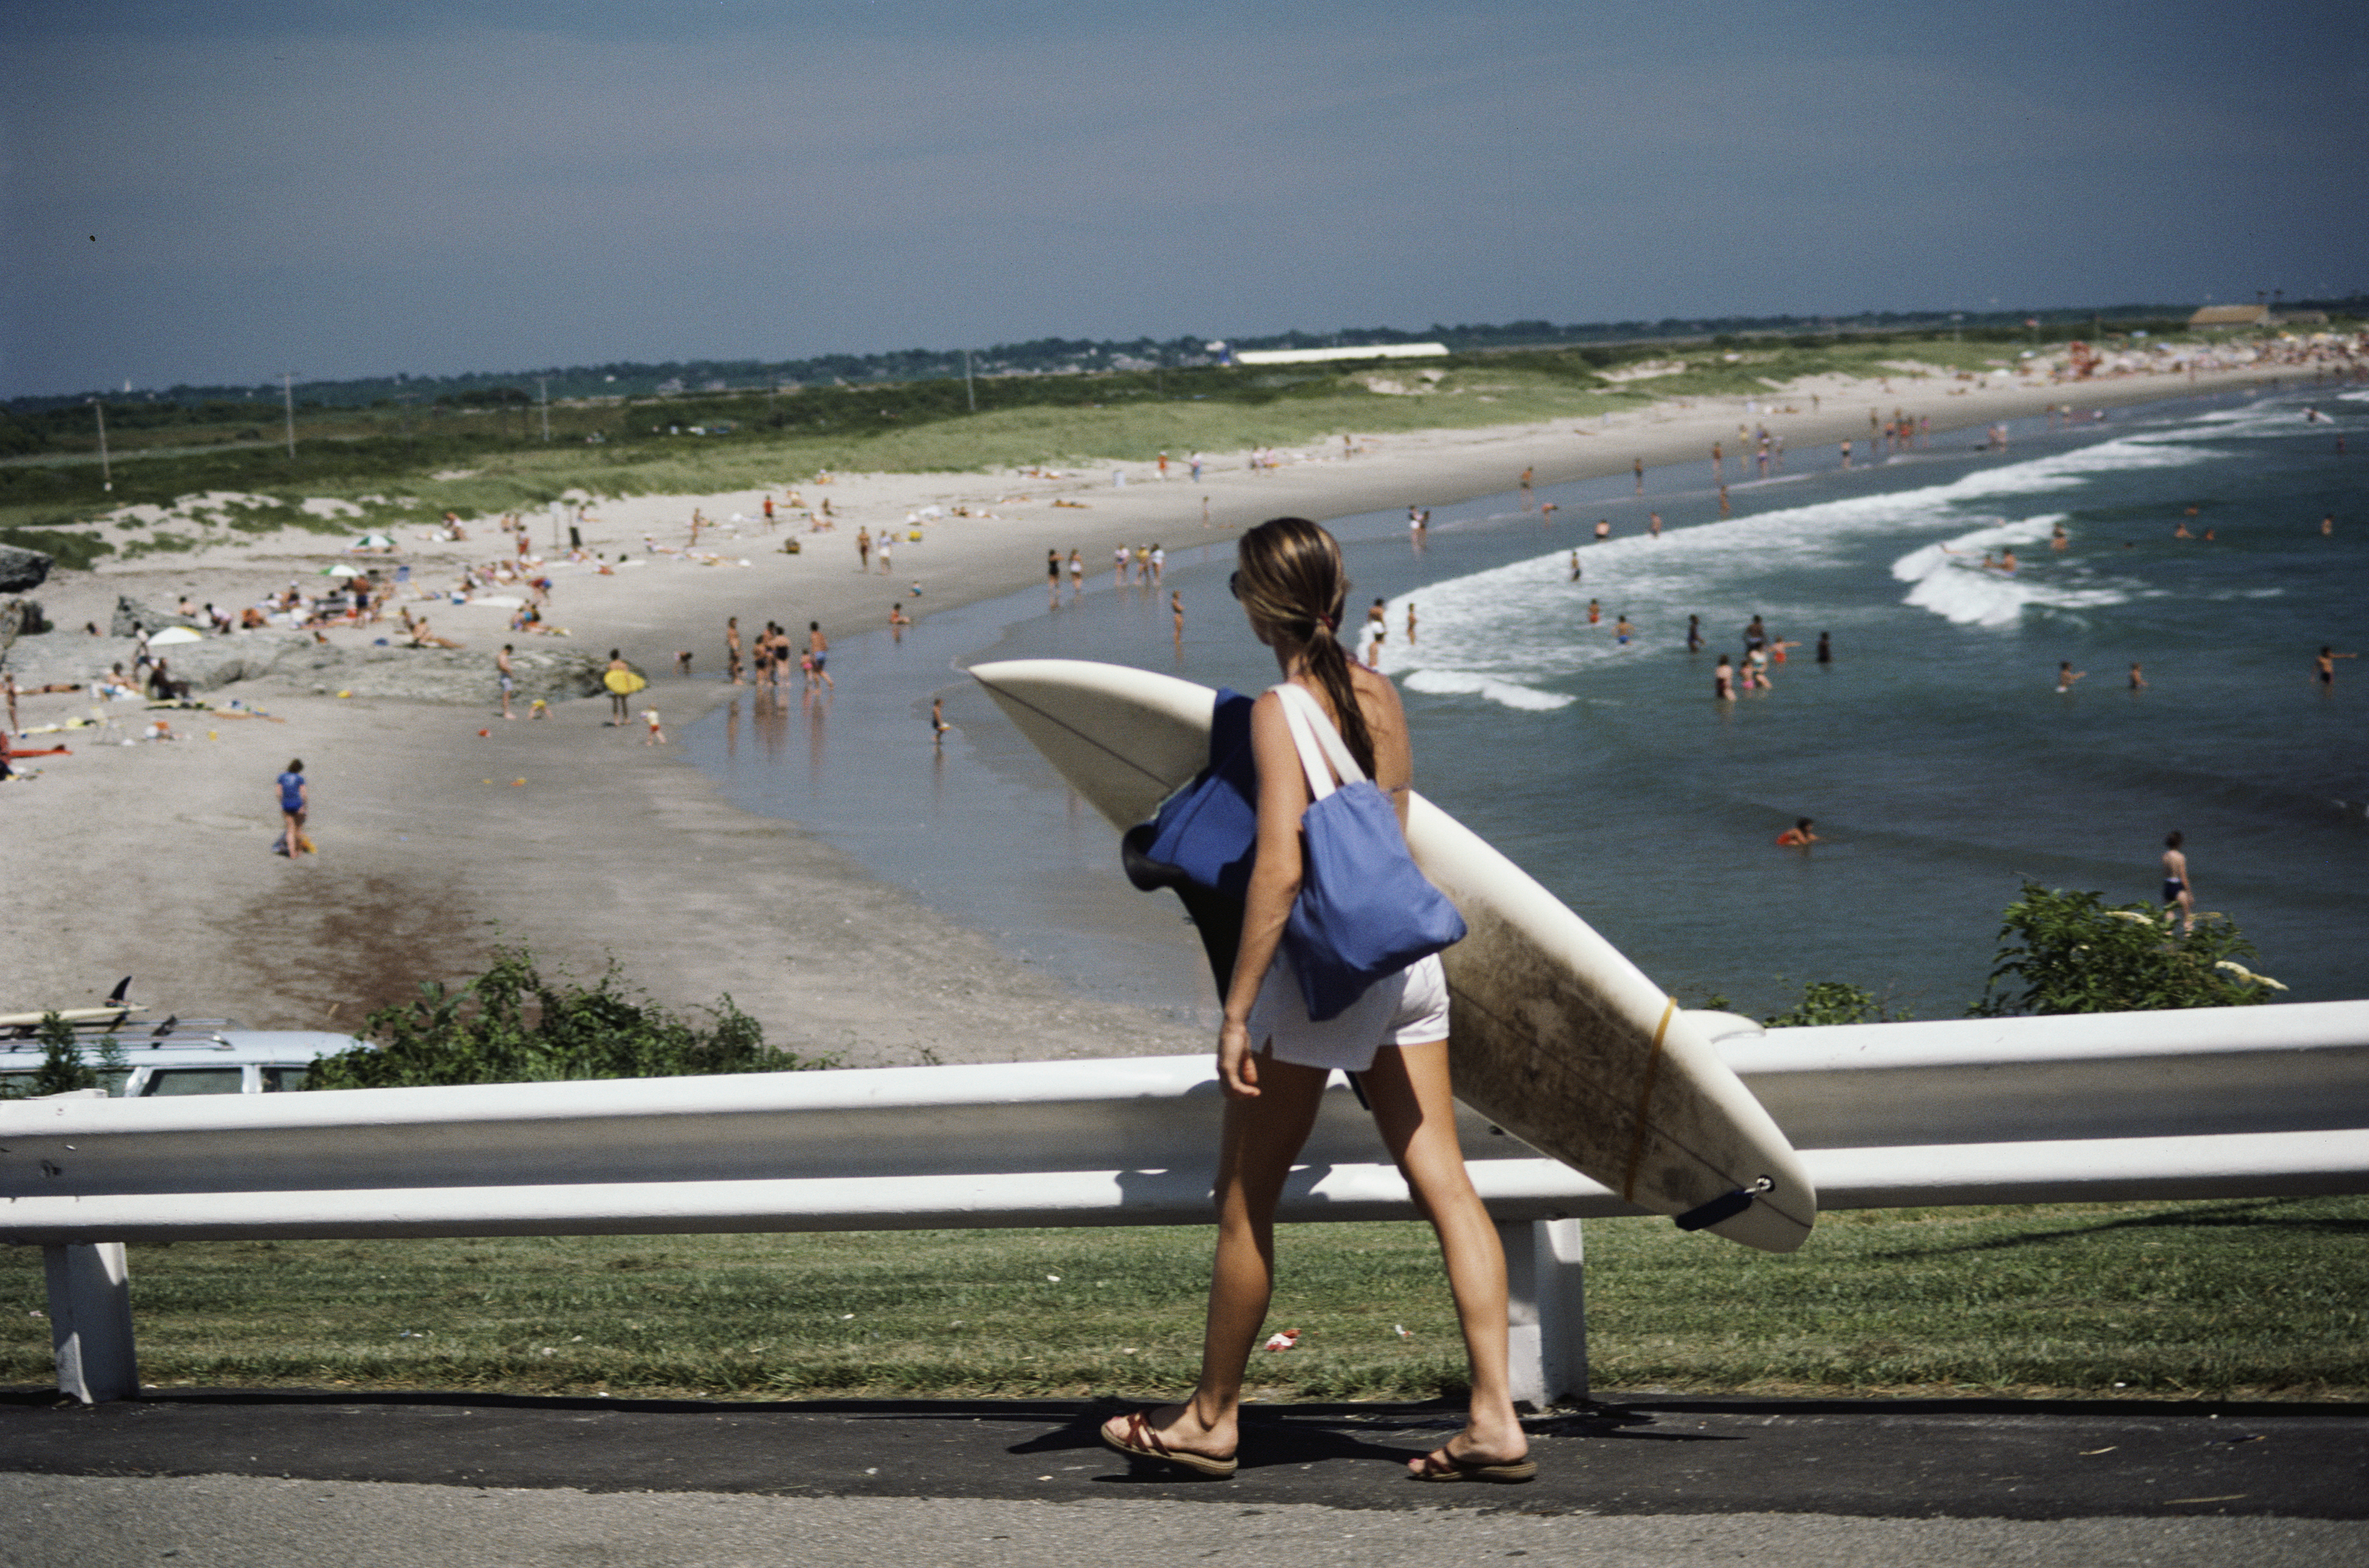 Rhode Island is popular with beach and watersports enthusiats